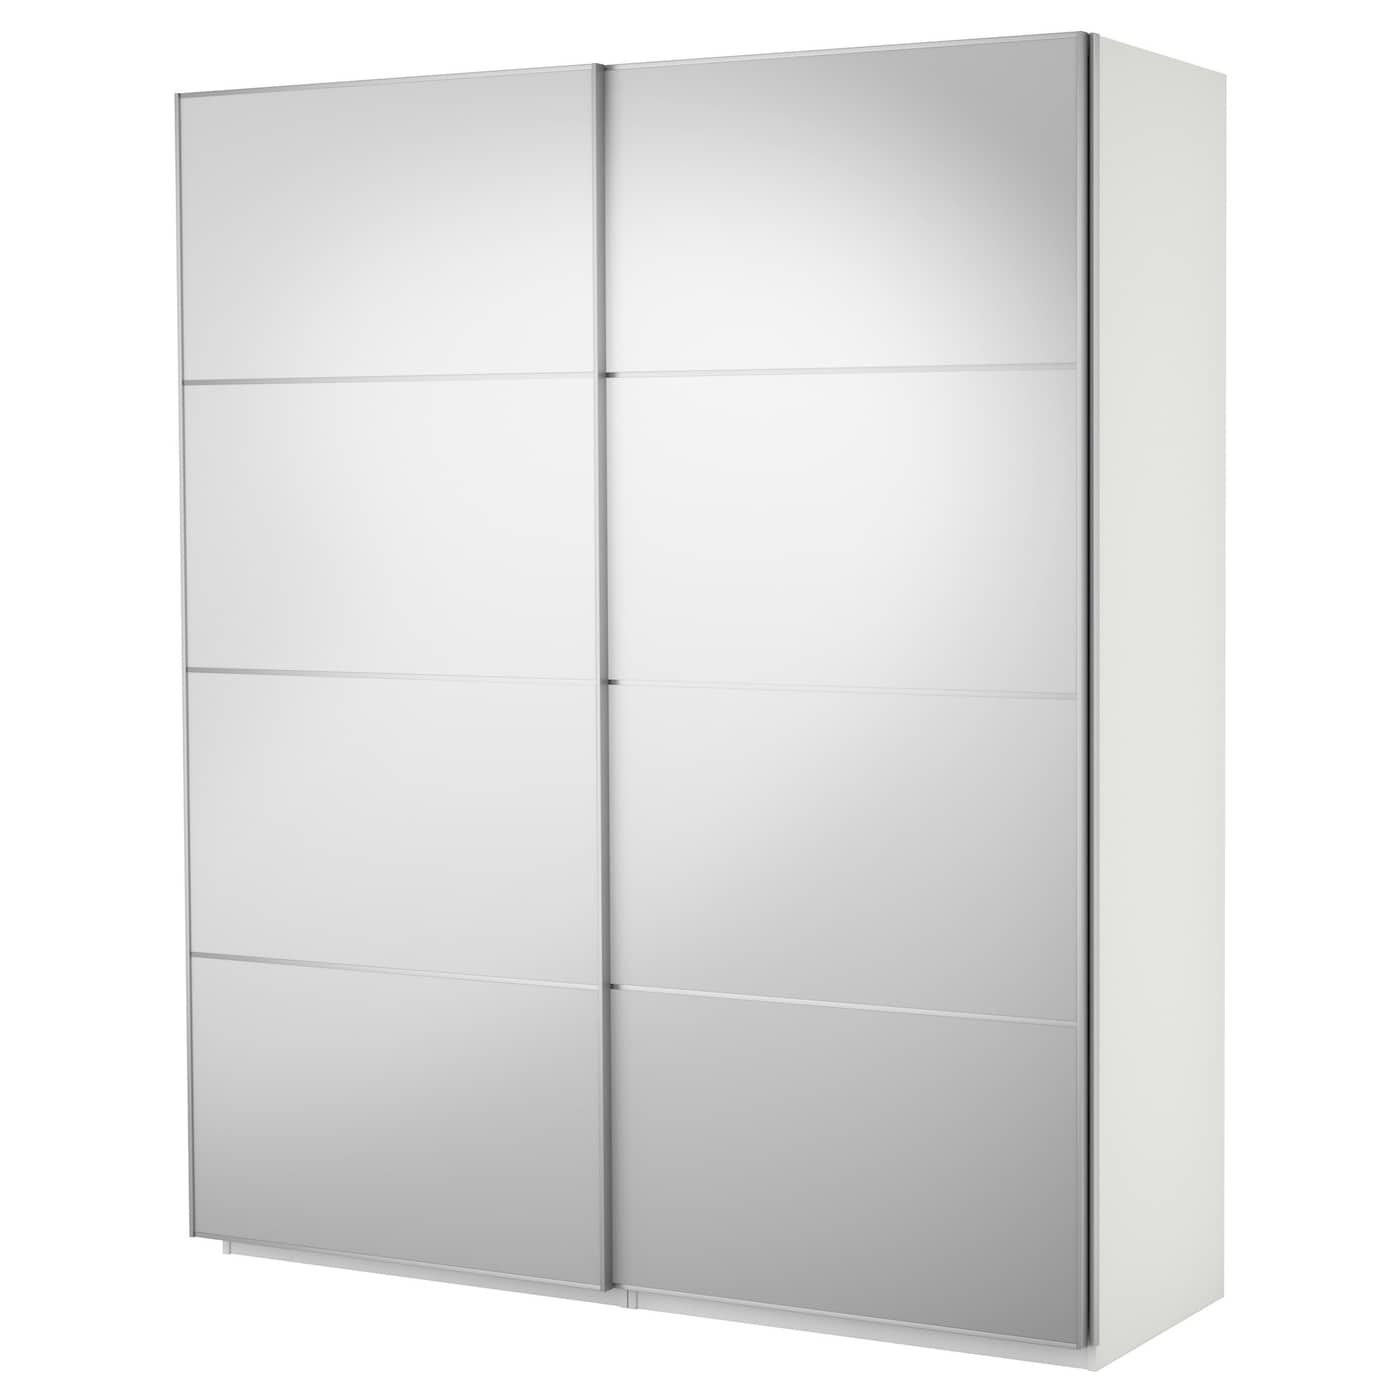 pax armoire pte coul blanc auli miroir 200x44x236 cm ikea. Black Bedroom Furniture Sets. Home Design Ideas